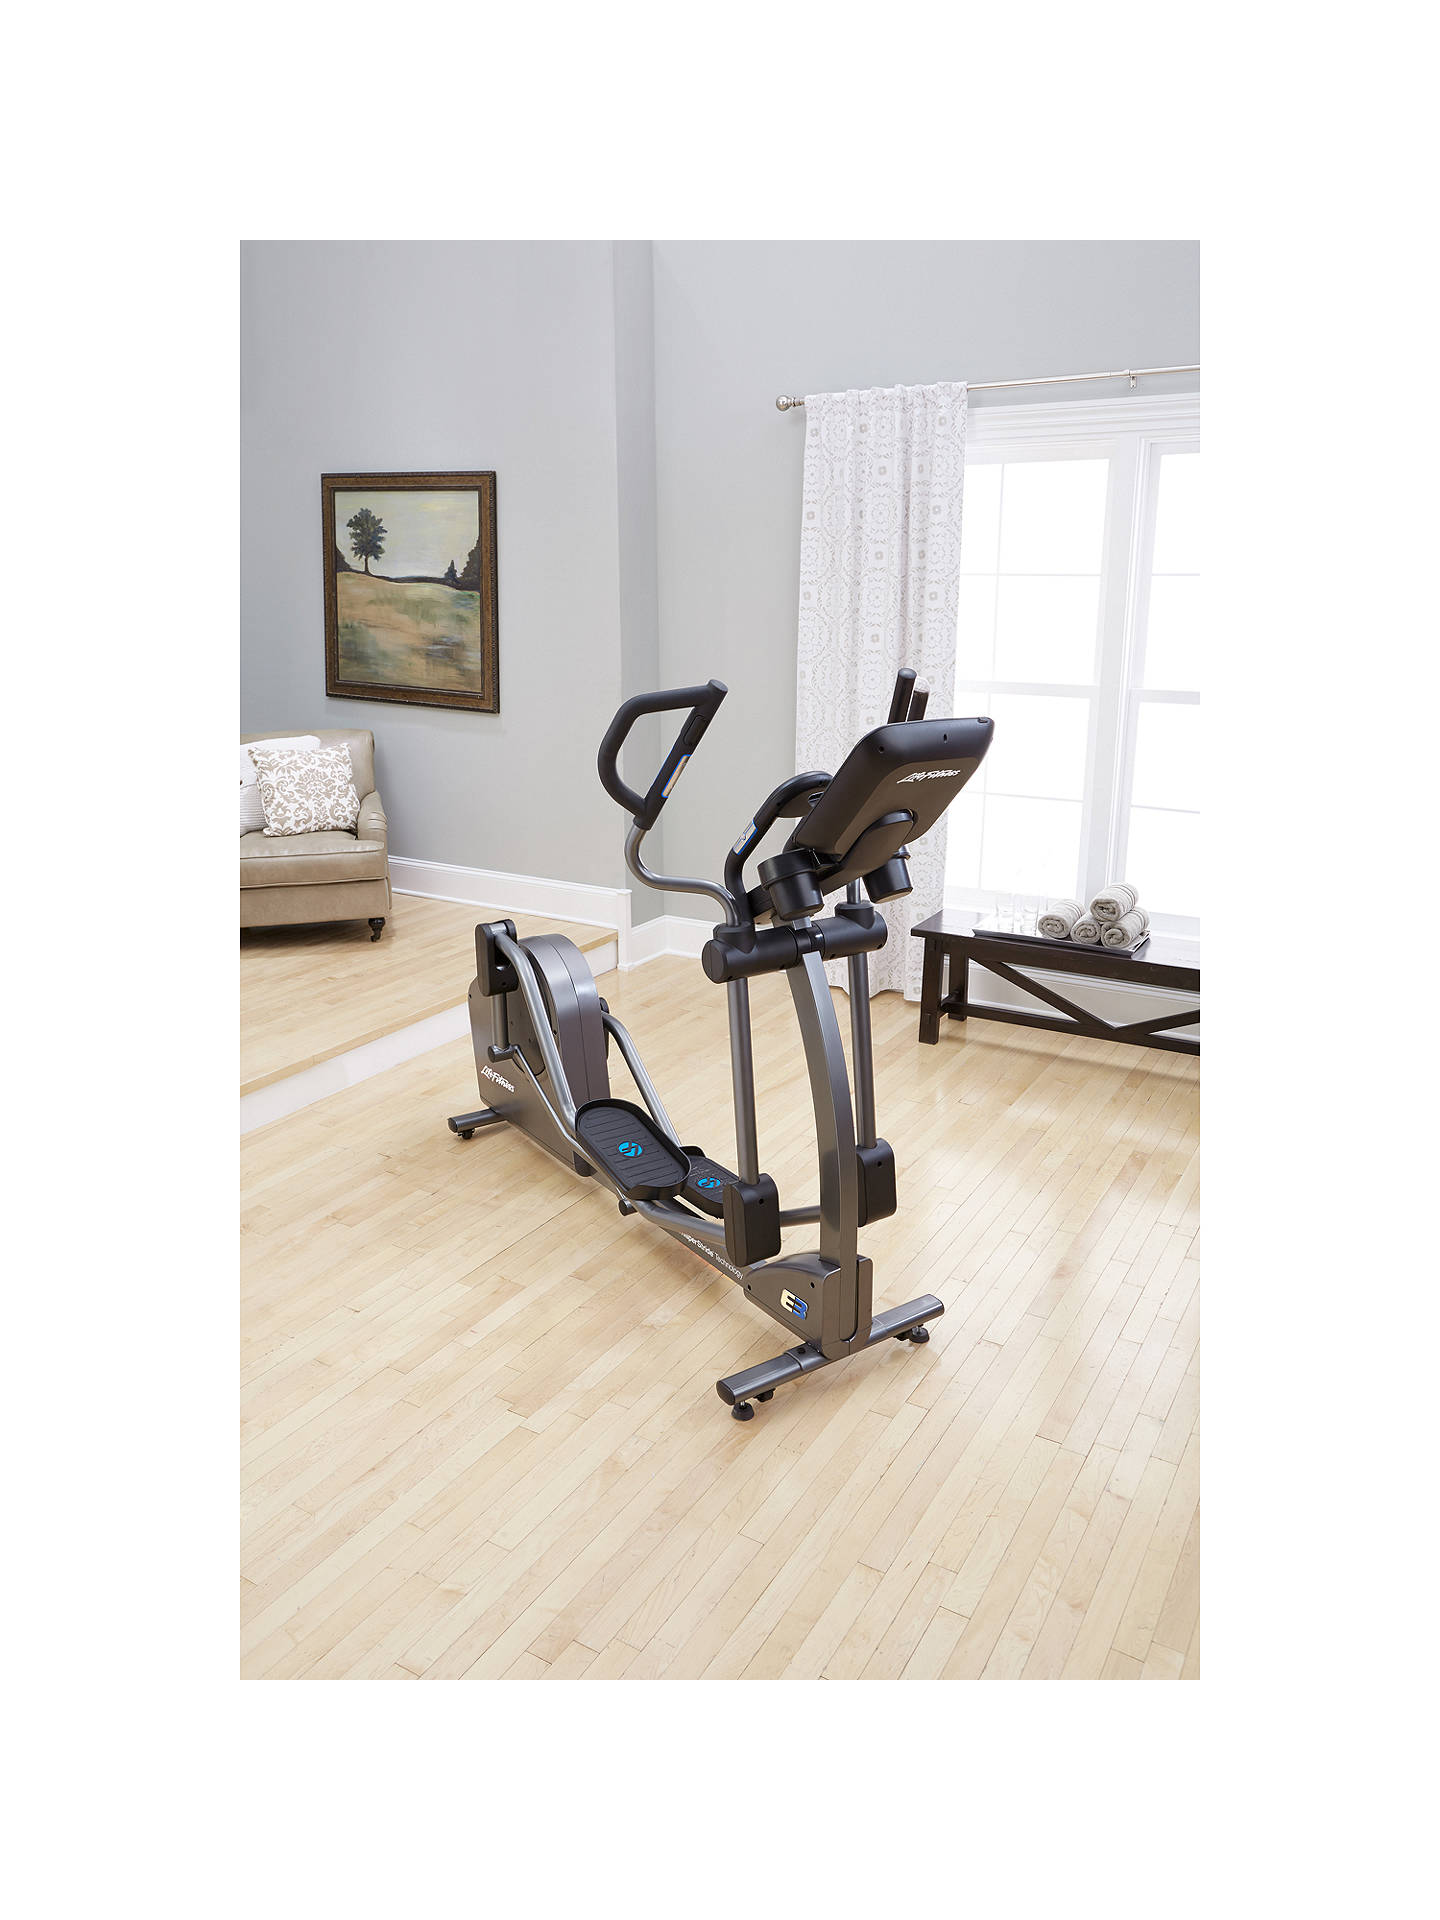 BuyLife Fitness E3 Elliptical Cross Trainer with Track Connect Console Online at johnlewis.com